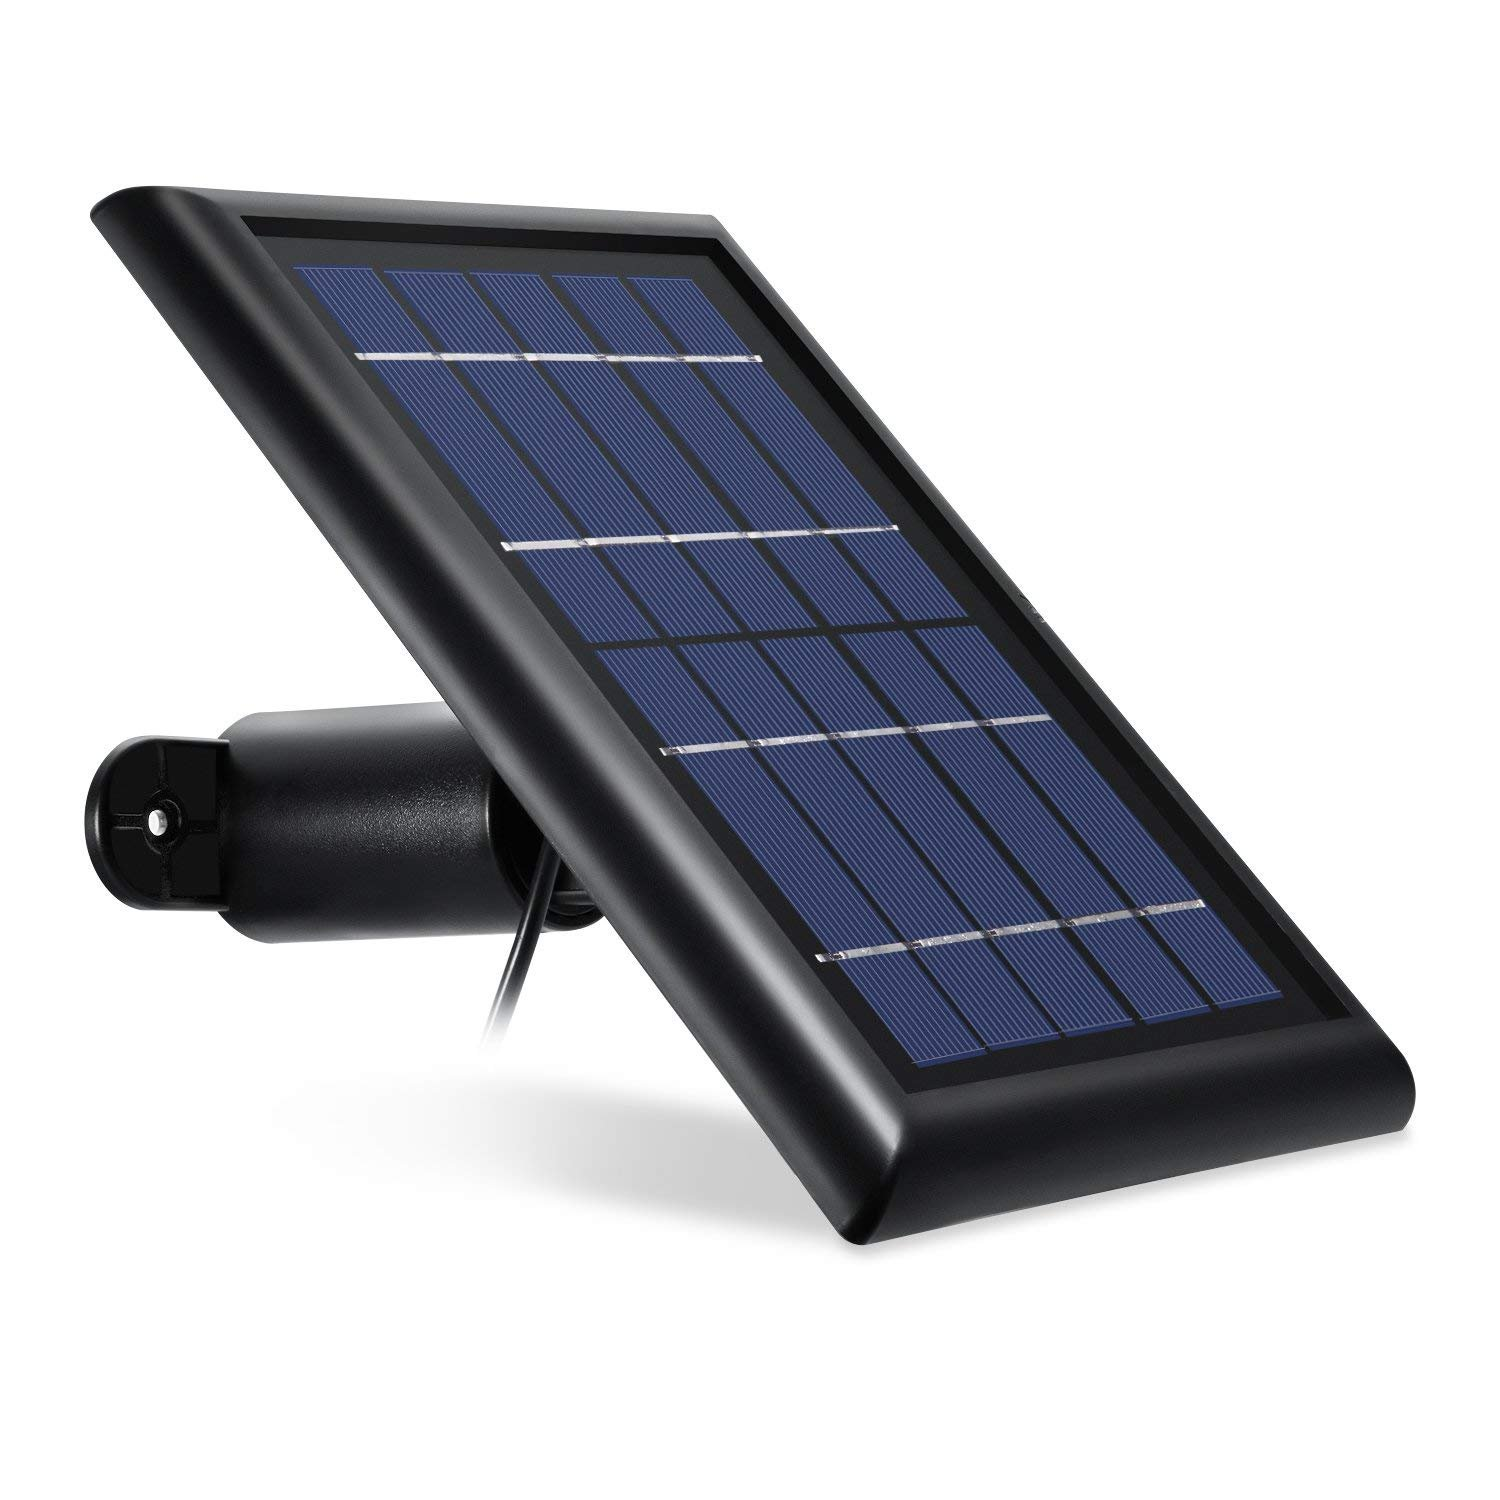 Solar Panel Compatible With Arlo Pro 2 Wiring A Small Battery Bank Panels Forum Go Light Power Your Outdoor Camera Continuously Our New Charging